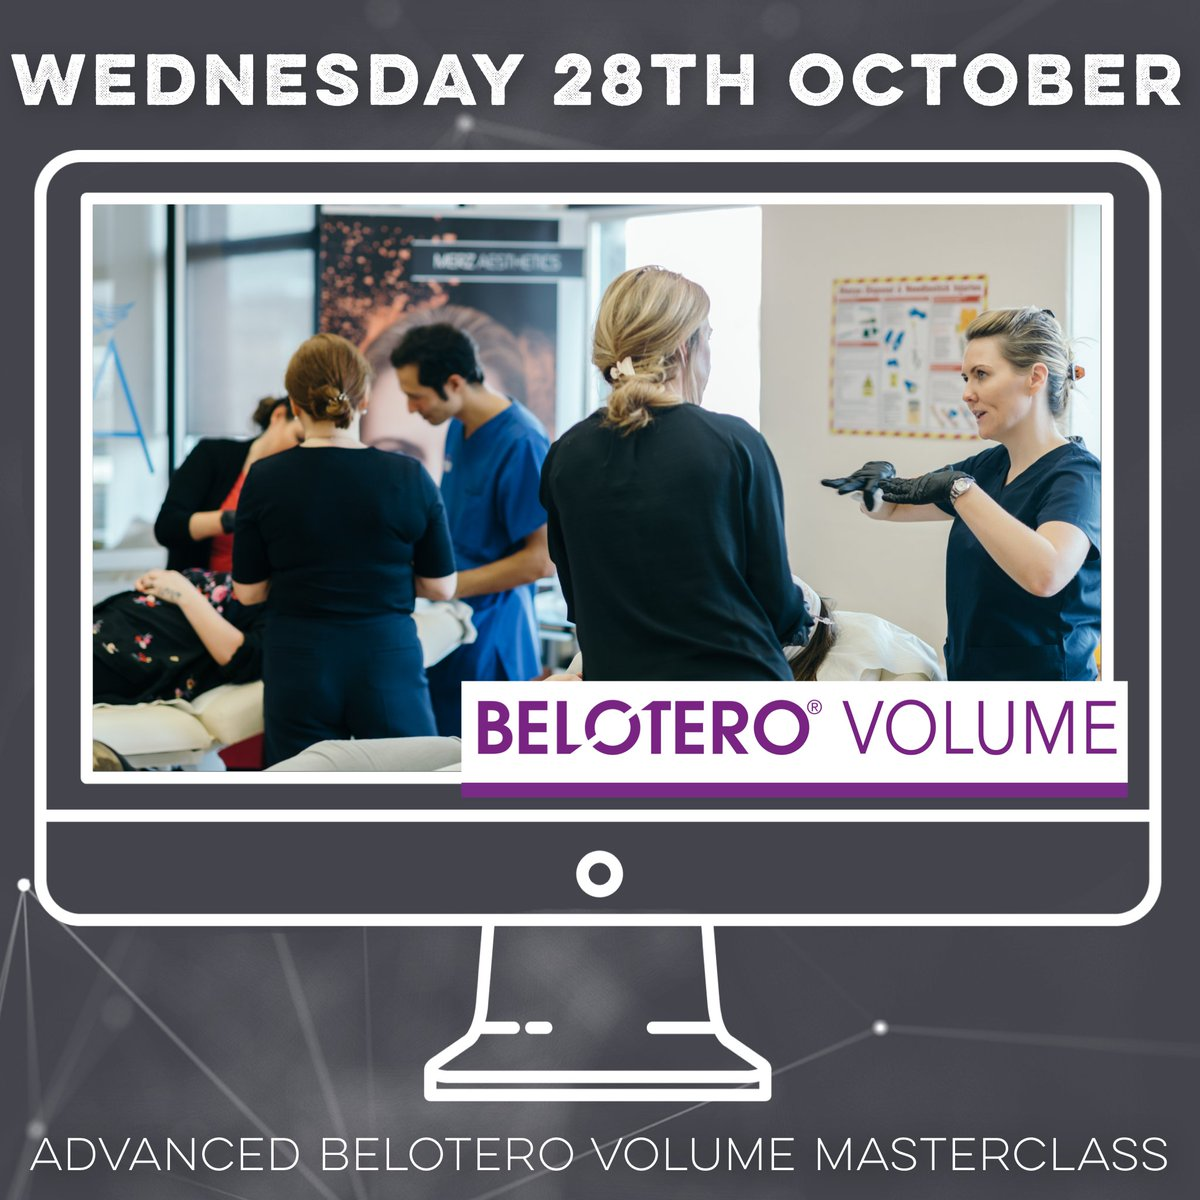 test Twitter Media - ATA Directors Drs Simon & Emma Ravichandran will be presenting an Advanced BELOTERO® Volume  live webinar on Wednesday 28th October as part of the Merz Aesthetics Institute of Advanced Aesthetics Clinical Education Programme To attend the webinar speak to your Merz Representative https://t.co/bdm9iGYNfR